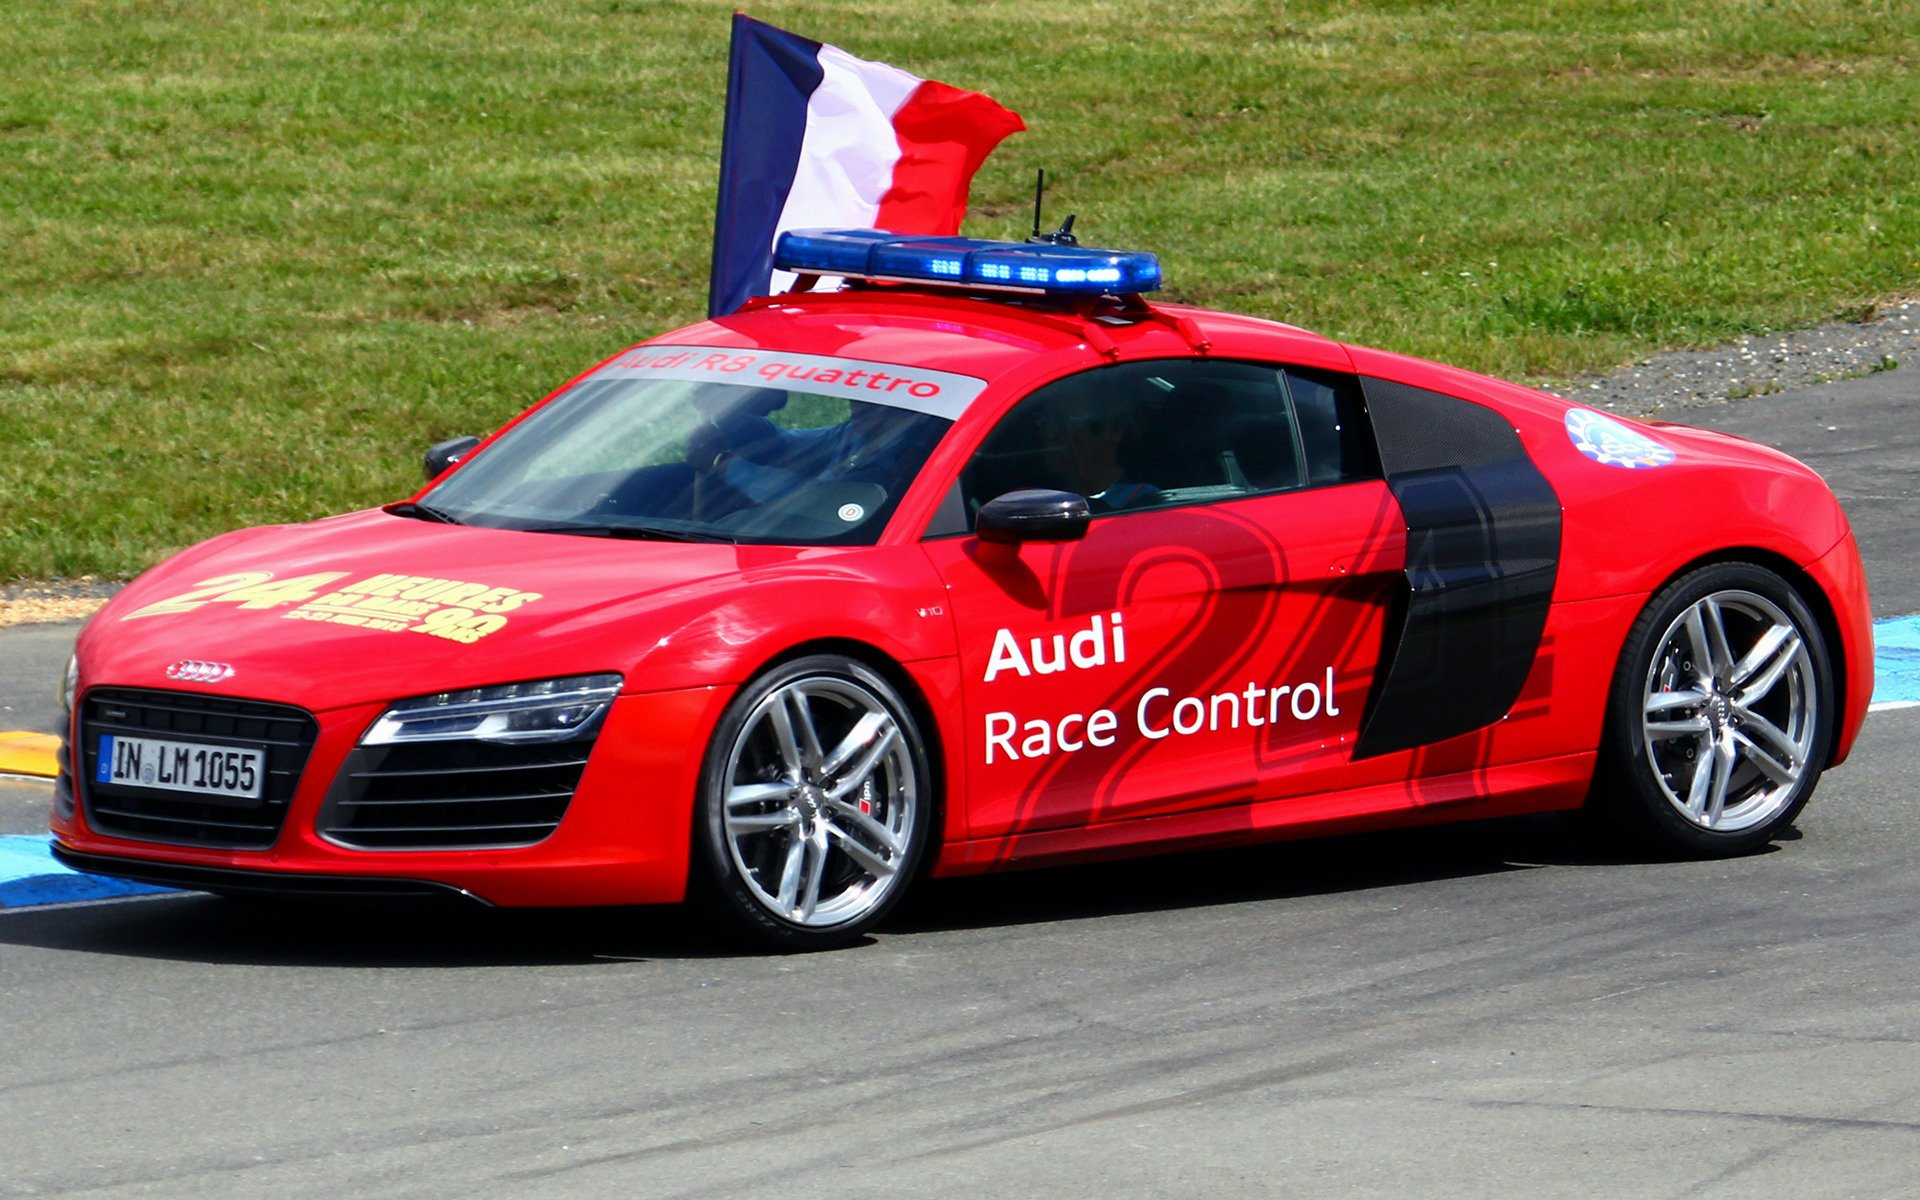 2013 Audi R8 V10 Coupe 24h Le Mans Safety Car   Wallpapers and HD 1920x1200